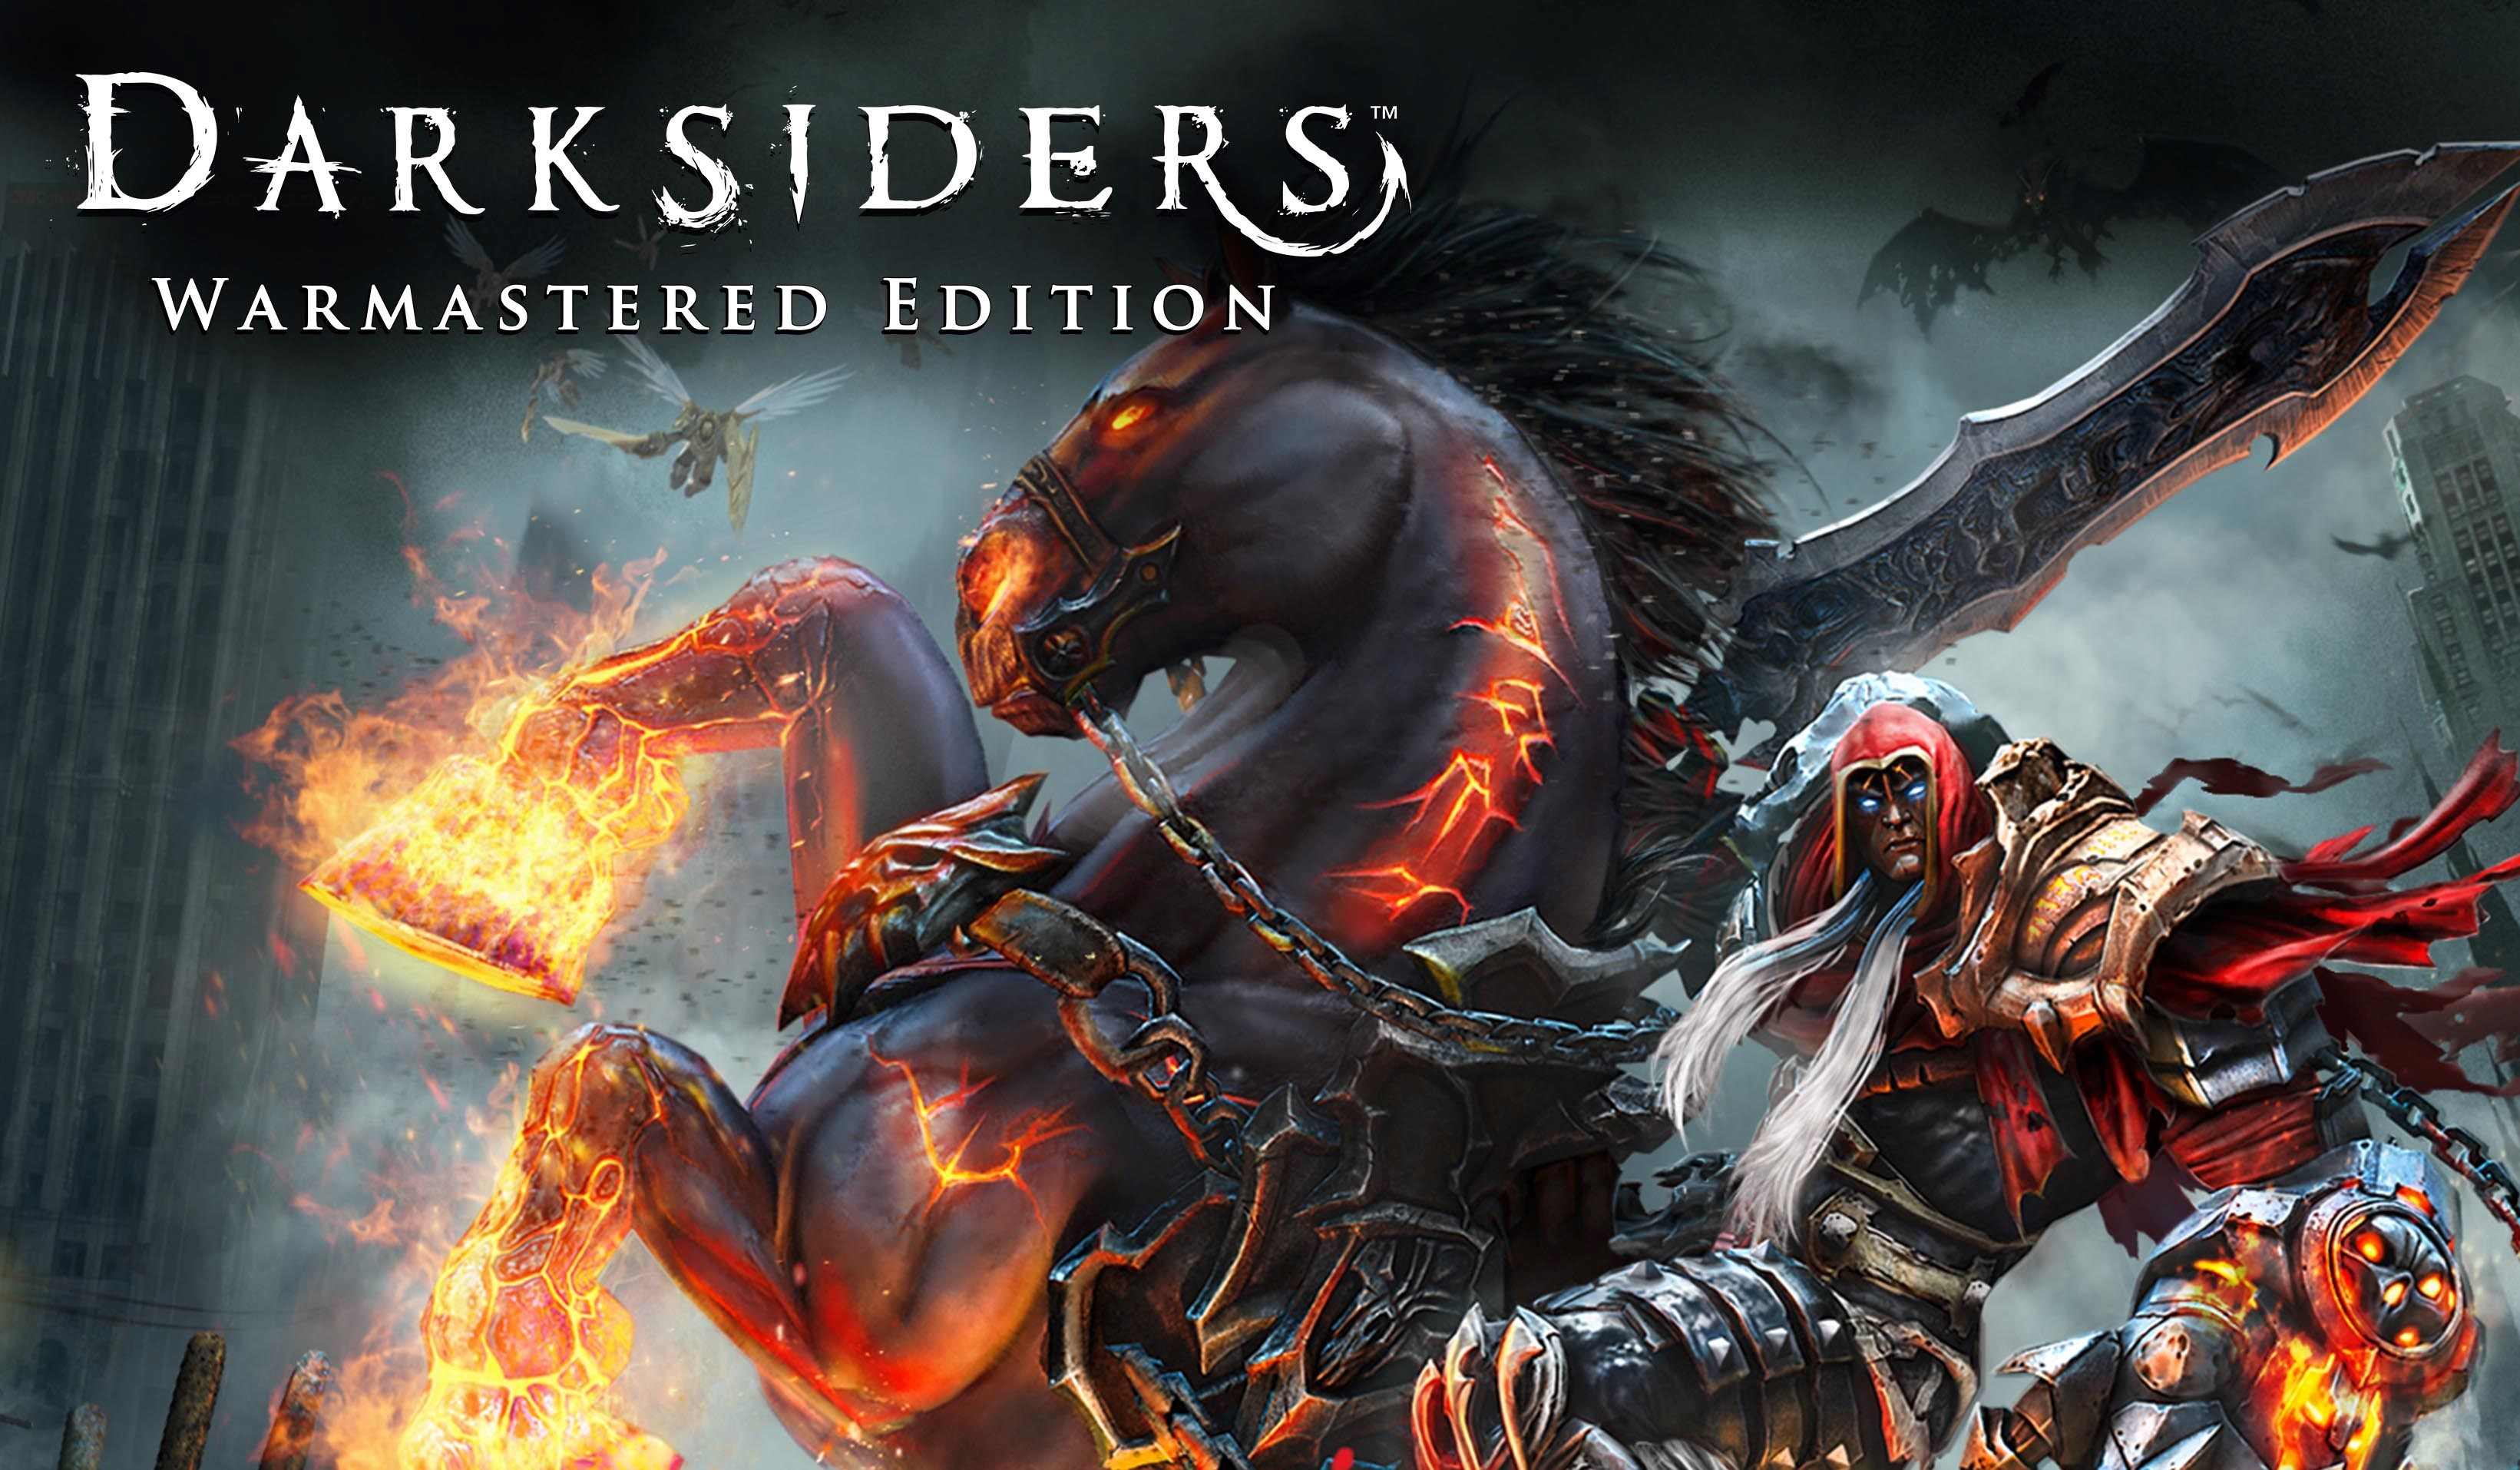 Darksiders: Warmastered Edition PS4 review - This means War